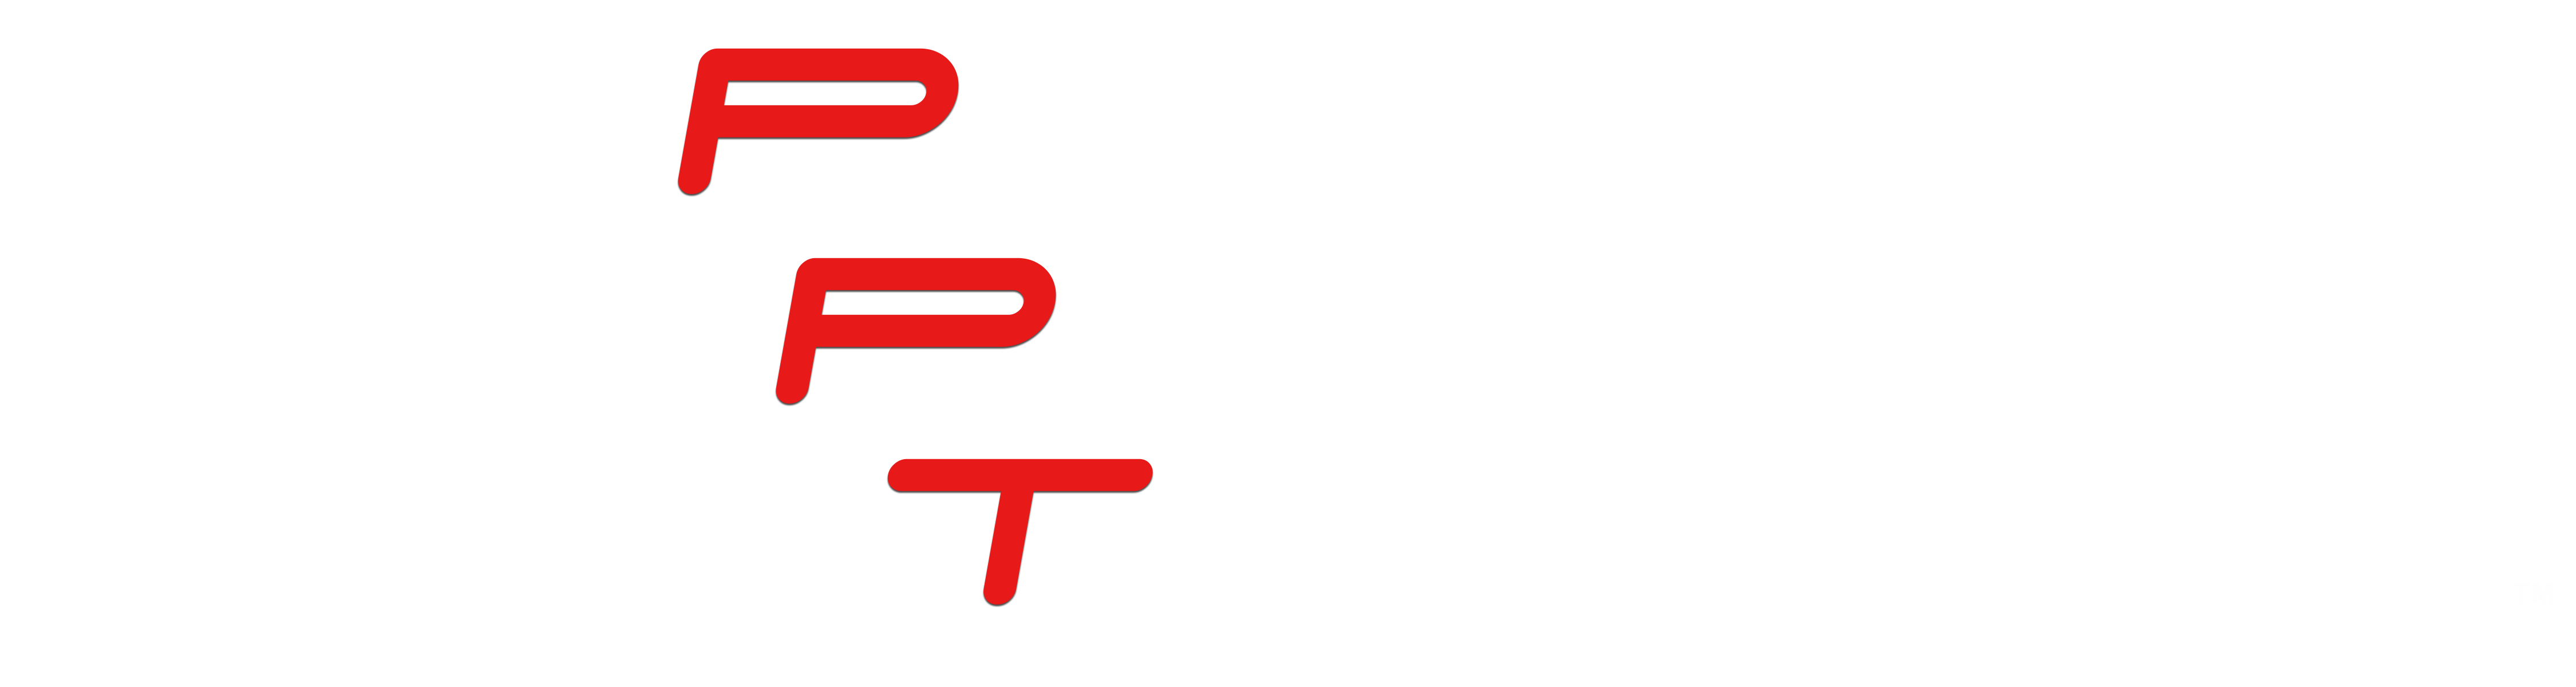 Personal Positioning Technologies